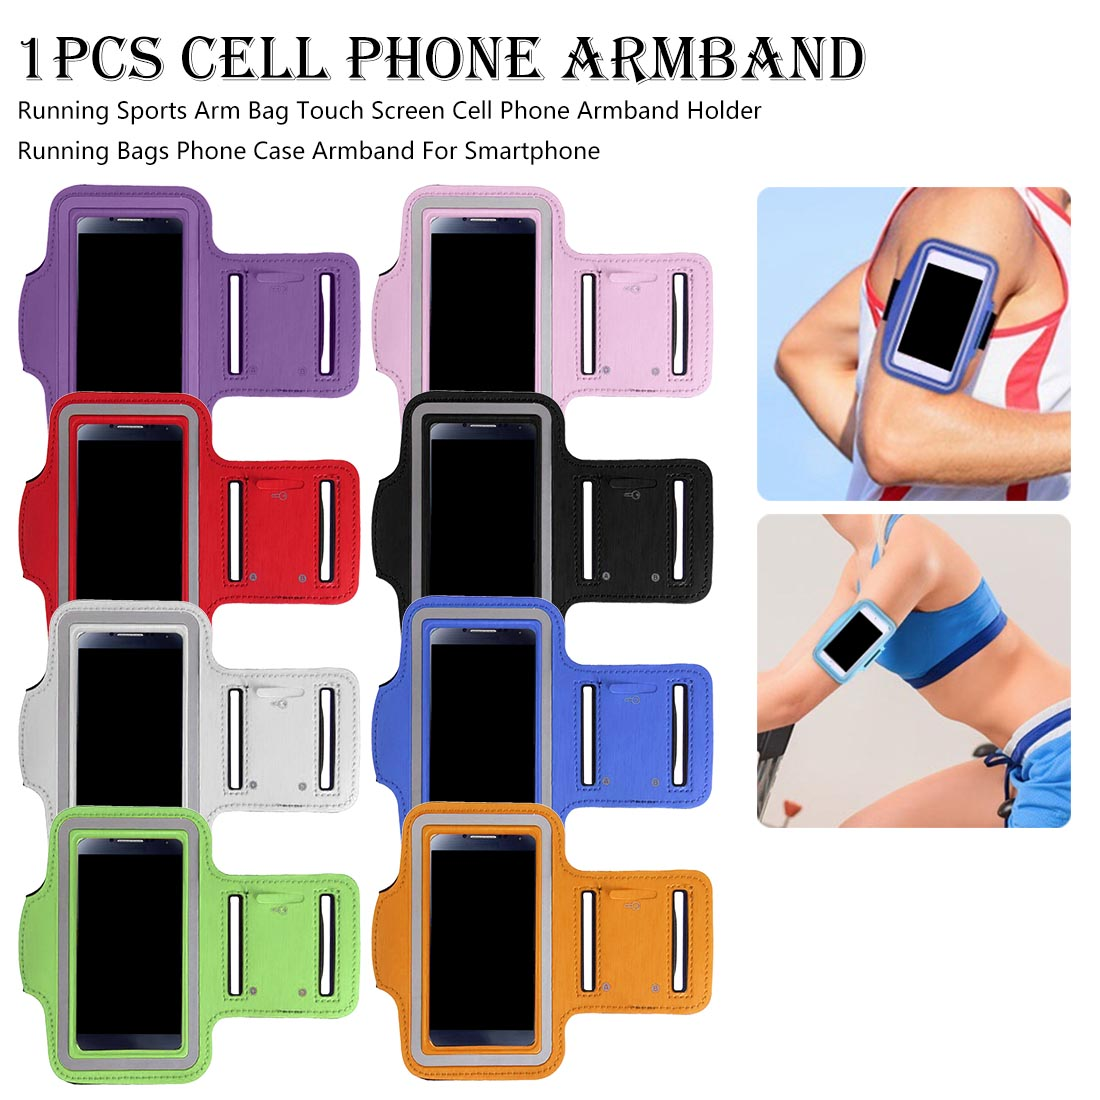 Outdoor Sports Mobile Phone Arm Bag Men And Women Fitness Wrist Running Mobile Phone Sets Waterproof Multi-function Arm Band